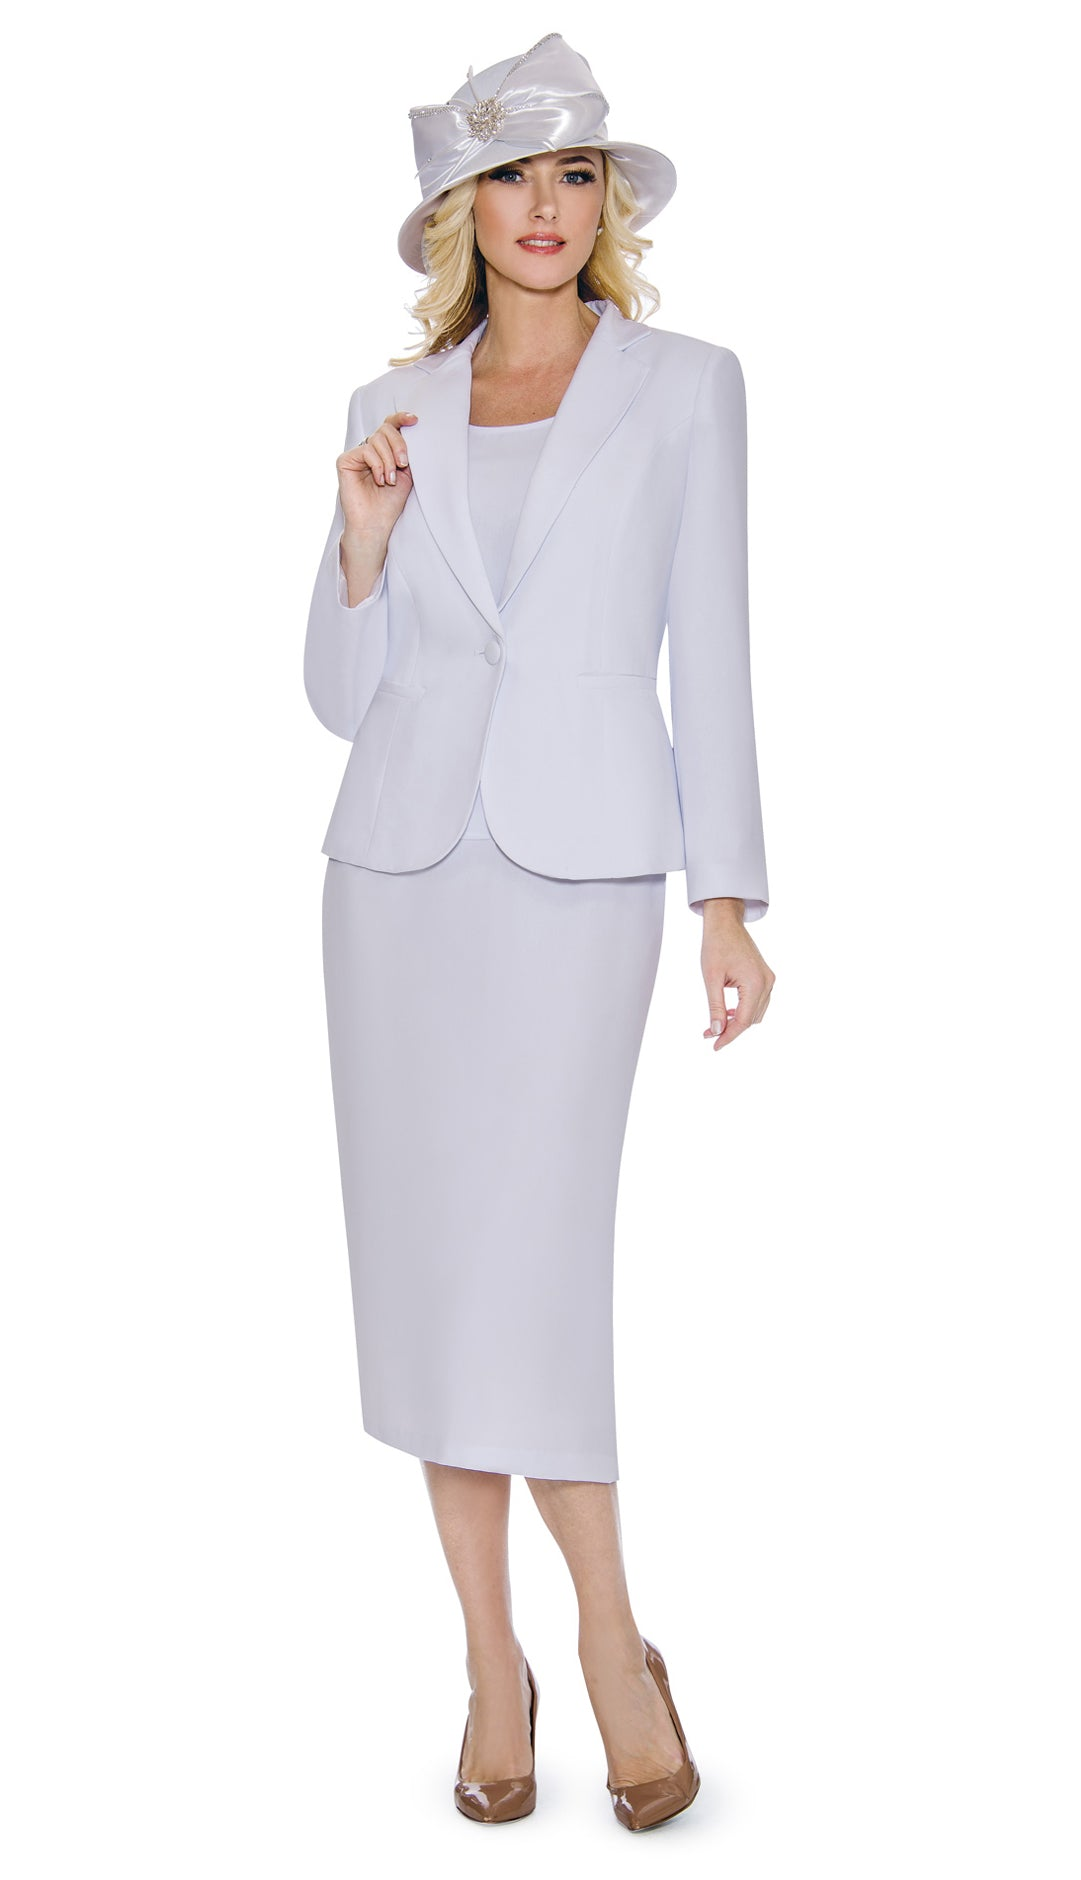 Giovanna Church Suit 0707-White - Church Suits For Less